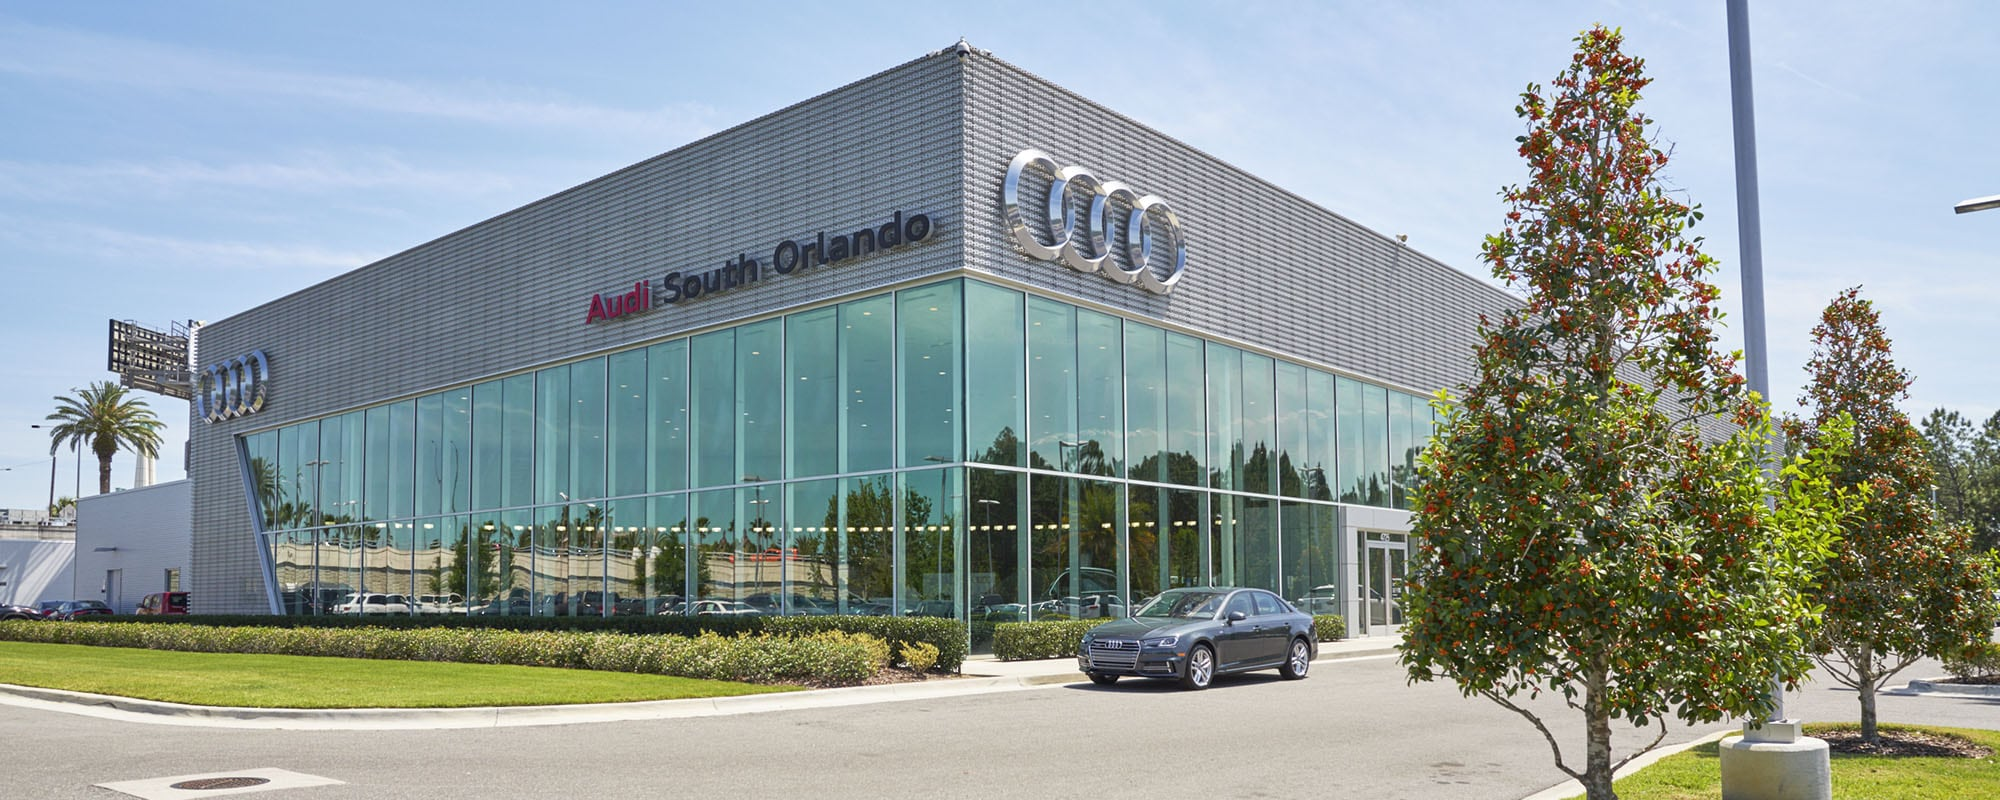 audi south orlando | audi dealership in orlando, fl